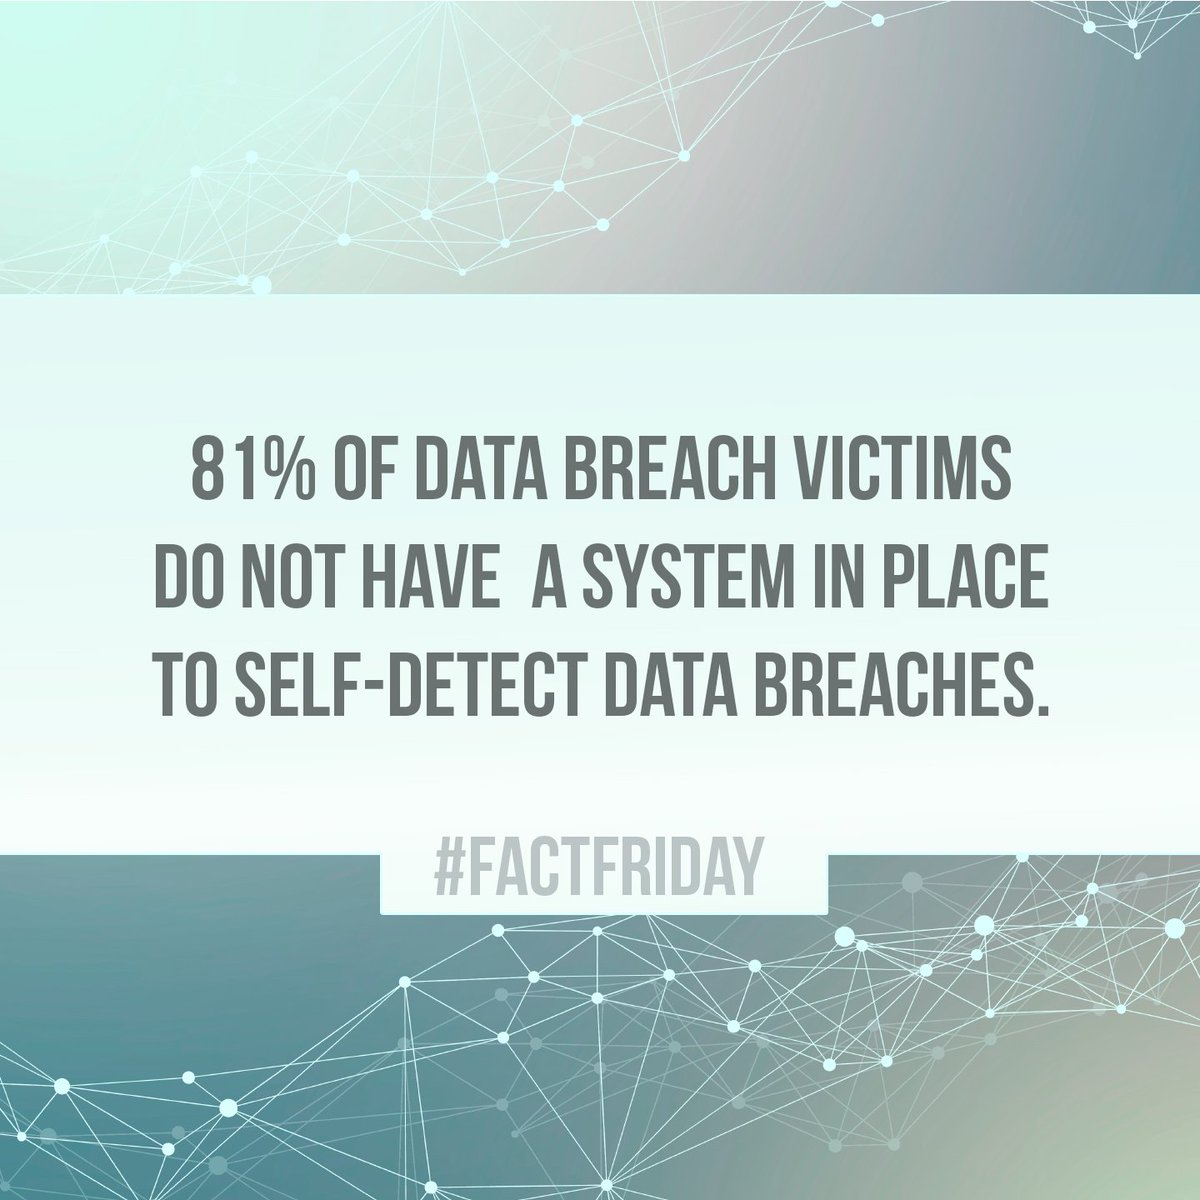 National Networks's photo on #FactFriday